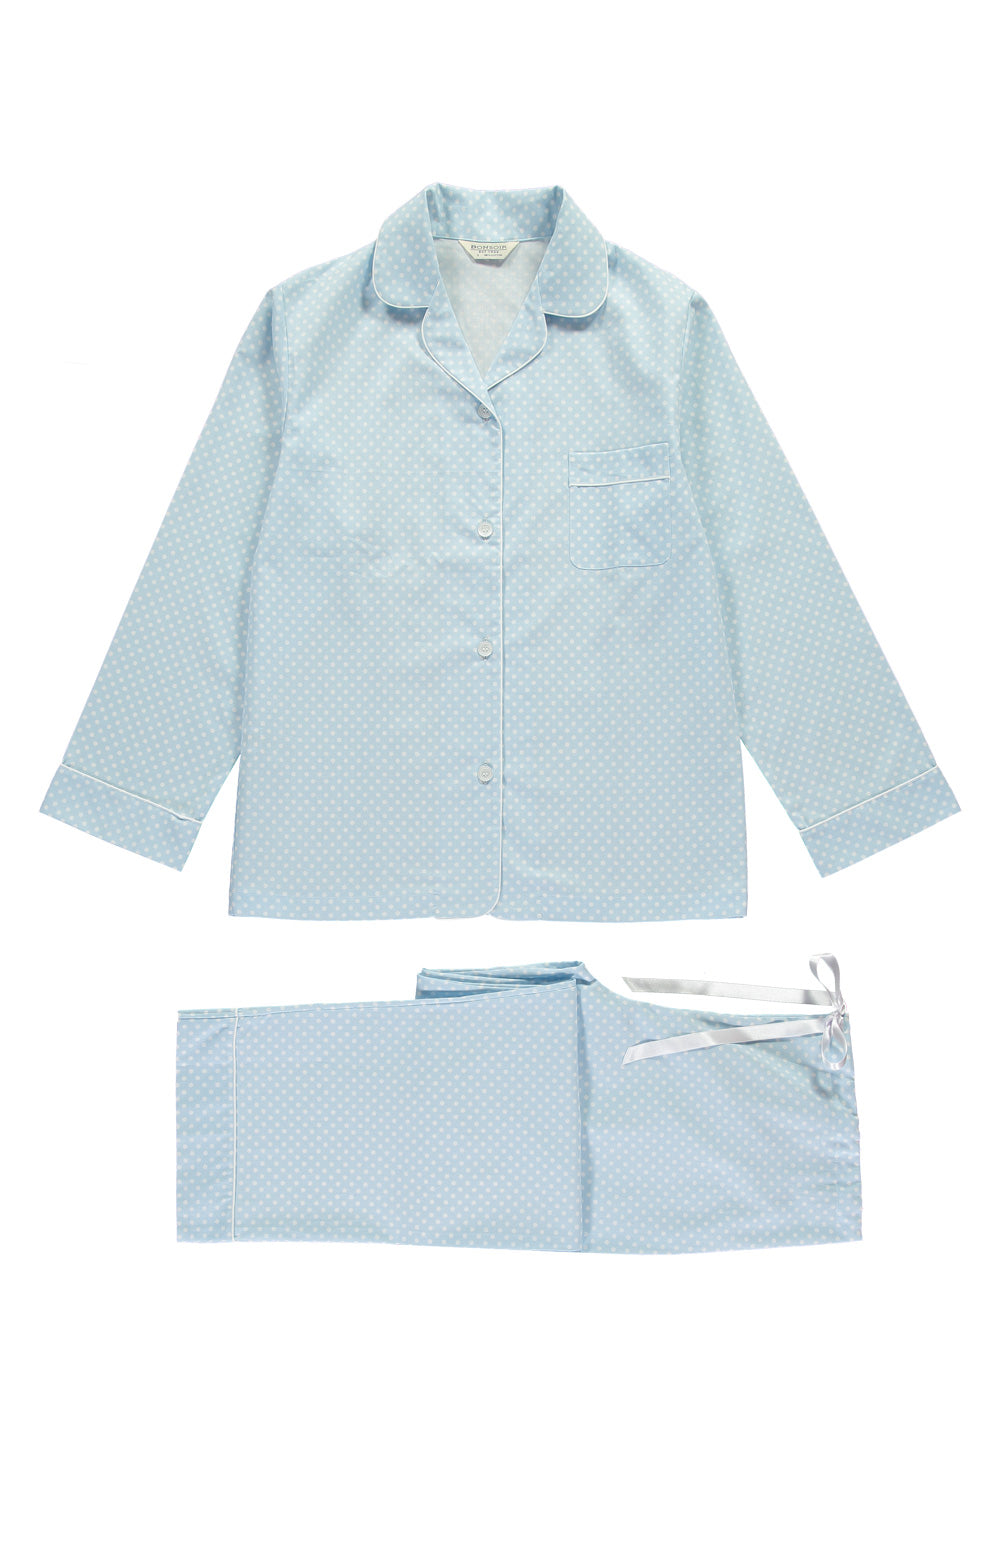 Classic Cotton Pyjamas (clfp) - Sky Spot | Bonsoir of London